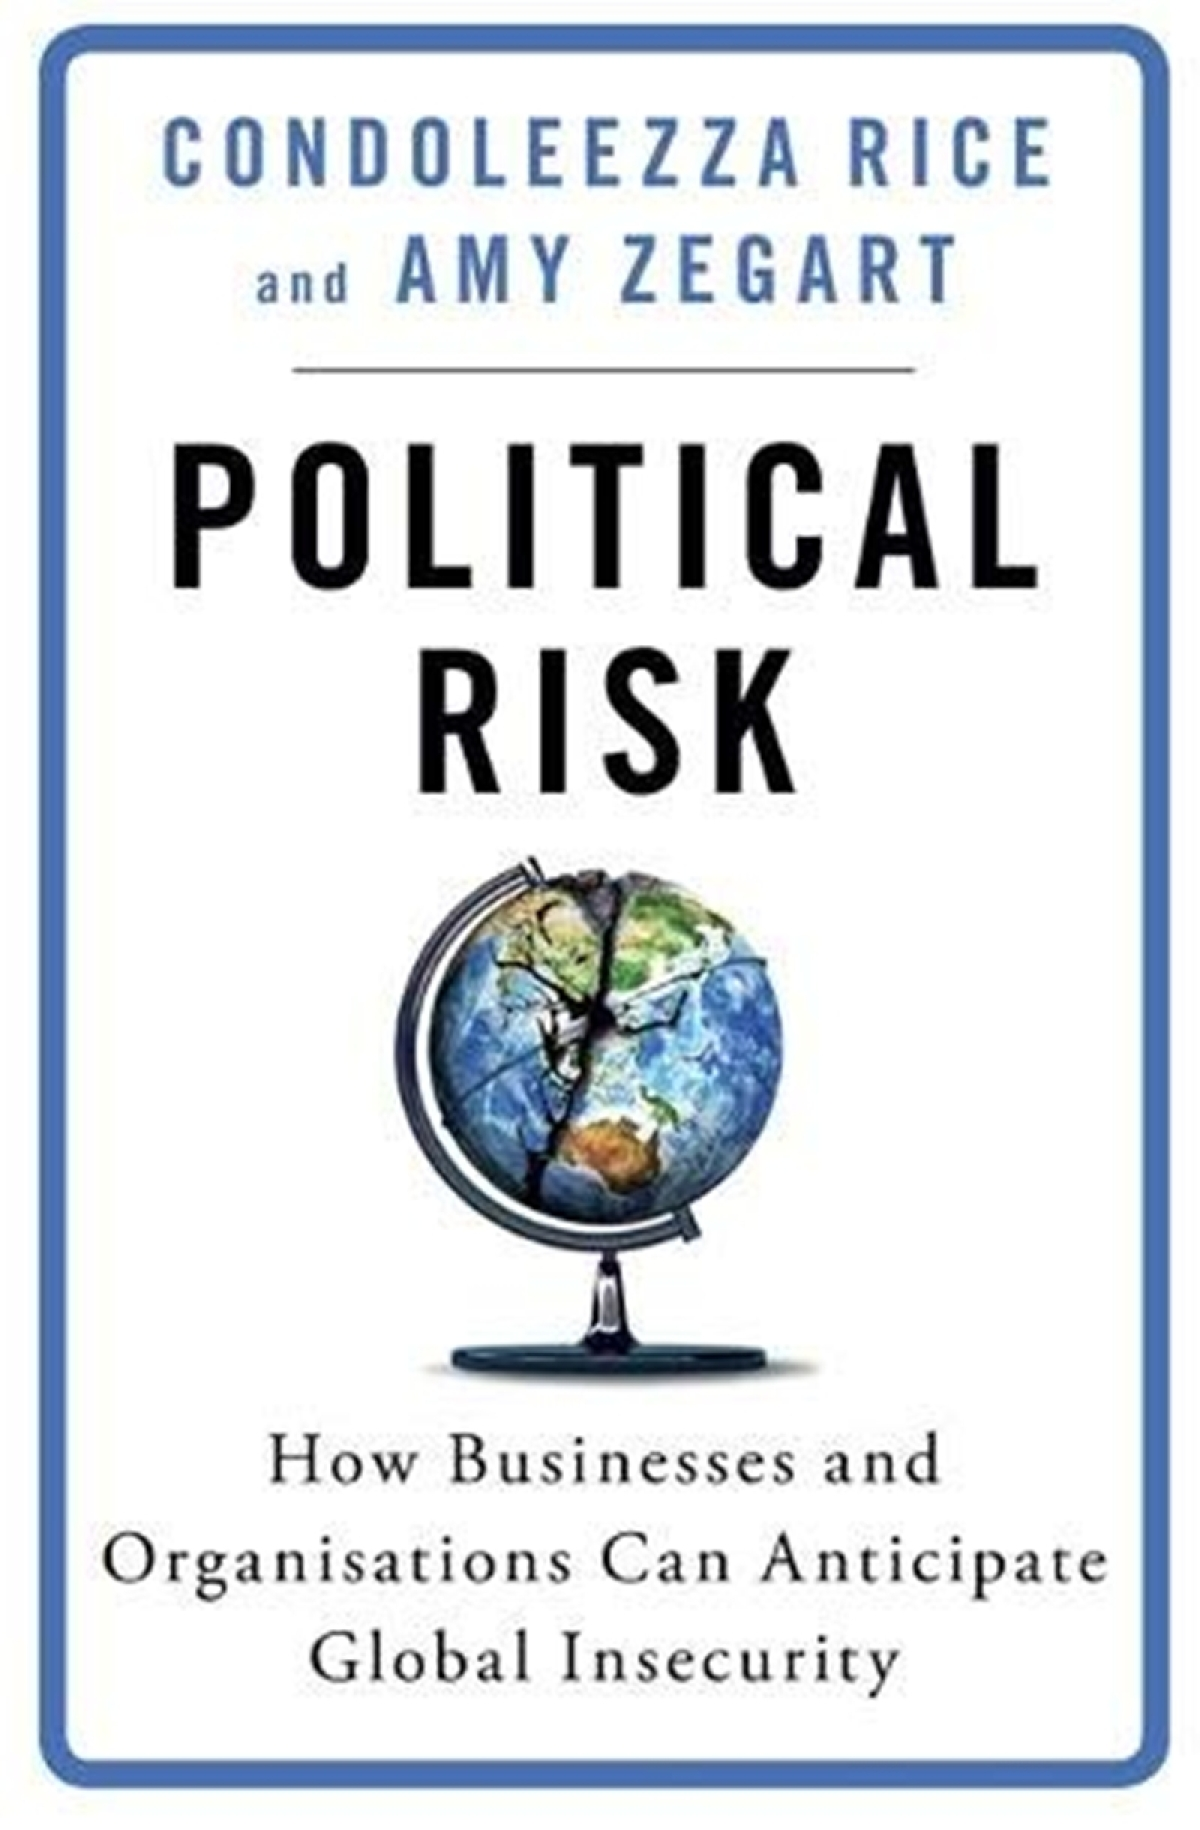 Political Risk by Condoleezza Rice & Amy Zegart: Review